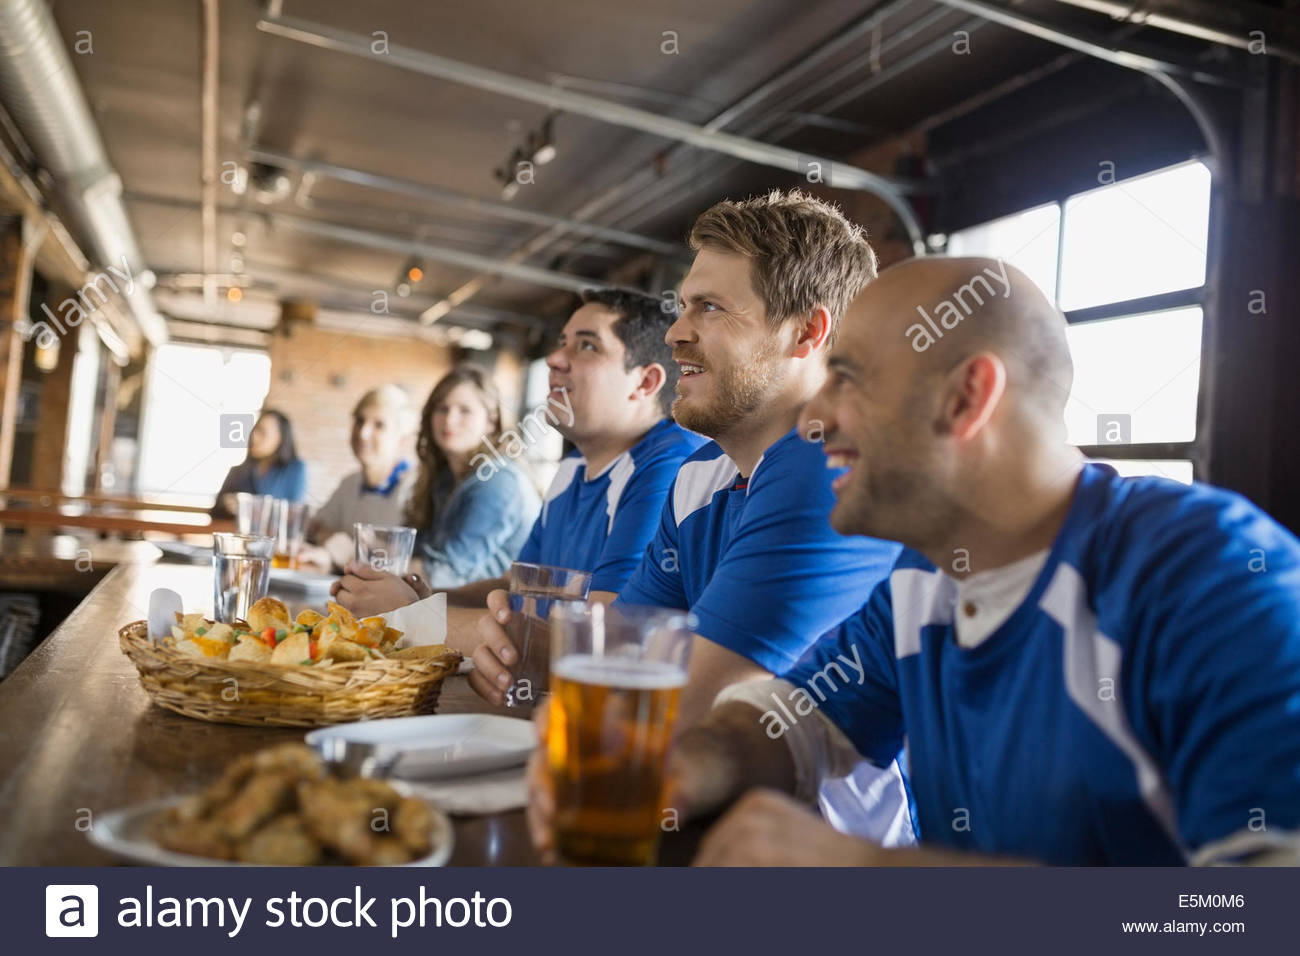 Fans taking pictures with cell phone behind barrier stock photo - Sports Fans Sitting At Bar In Pub Stock Image